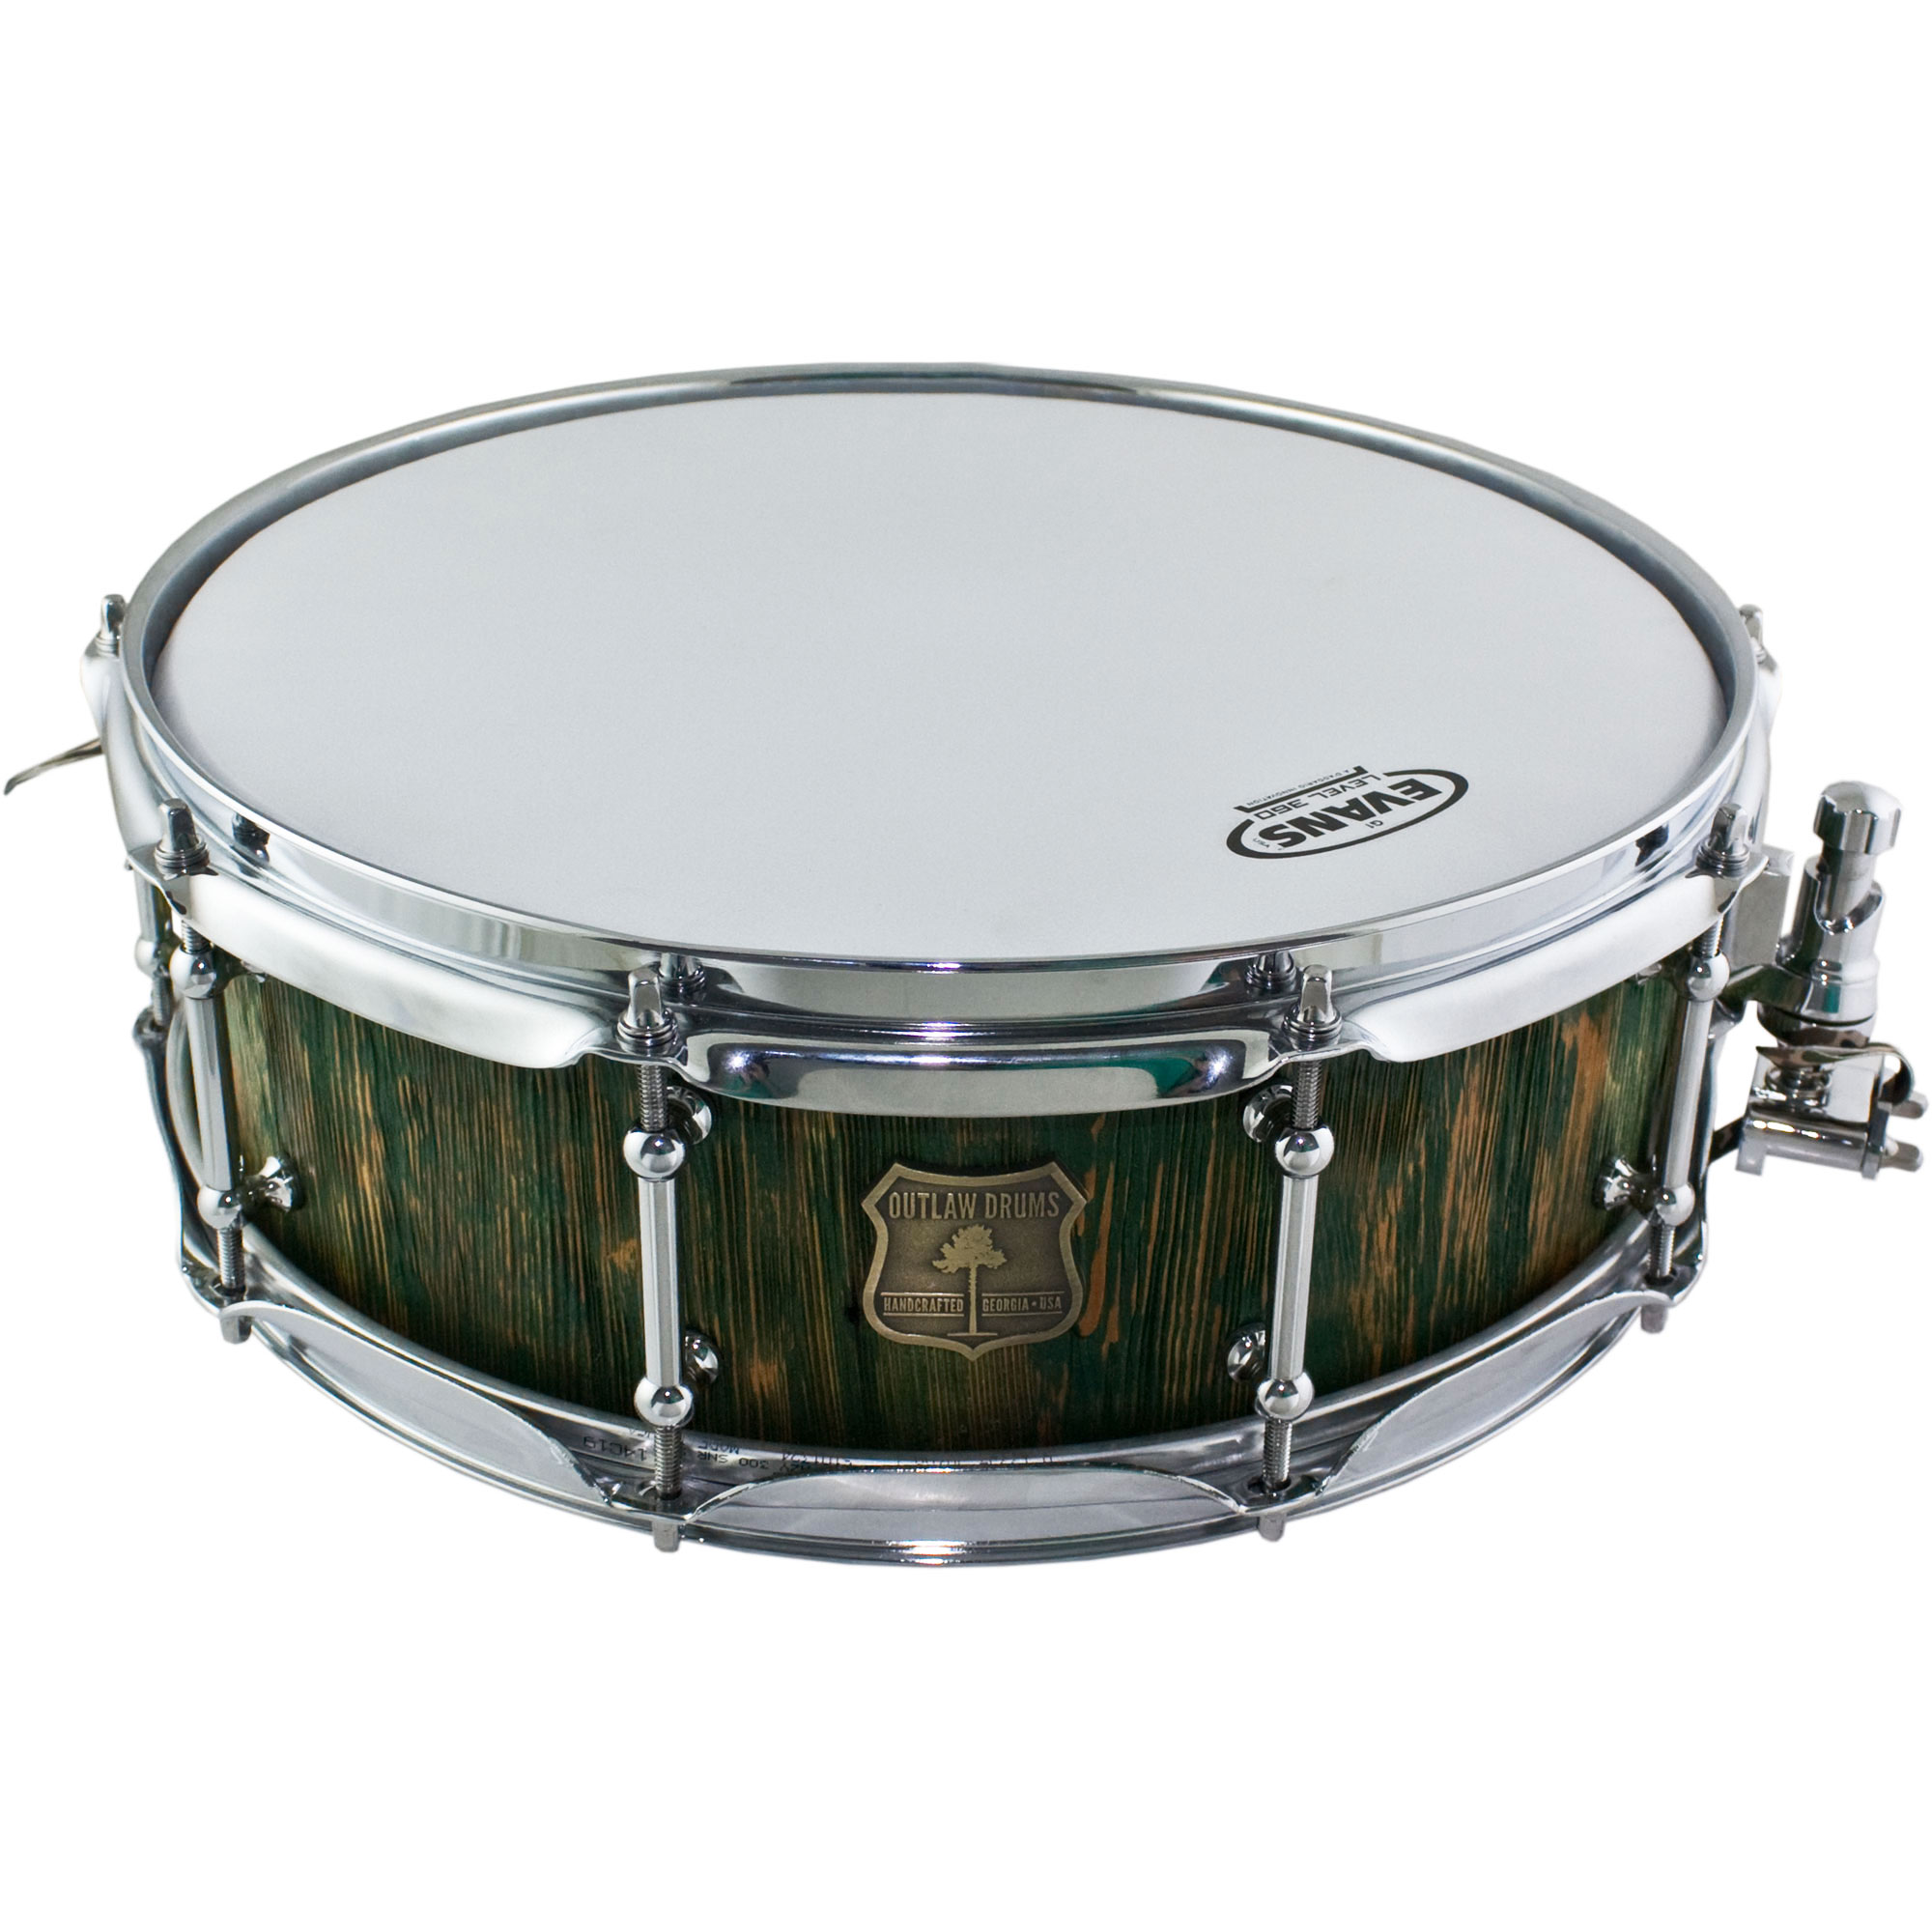 """Outlaw Drums 5"""" x 14"""" Weathered Heart Pine Reborn Snare Drum in Northern Moss"""